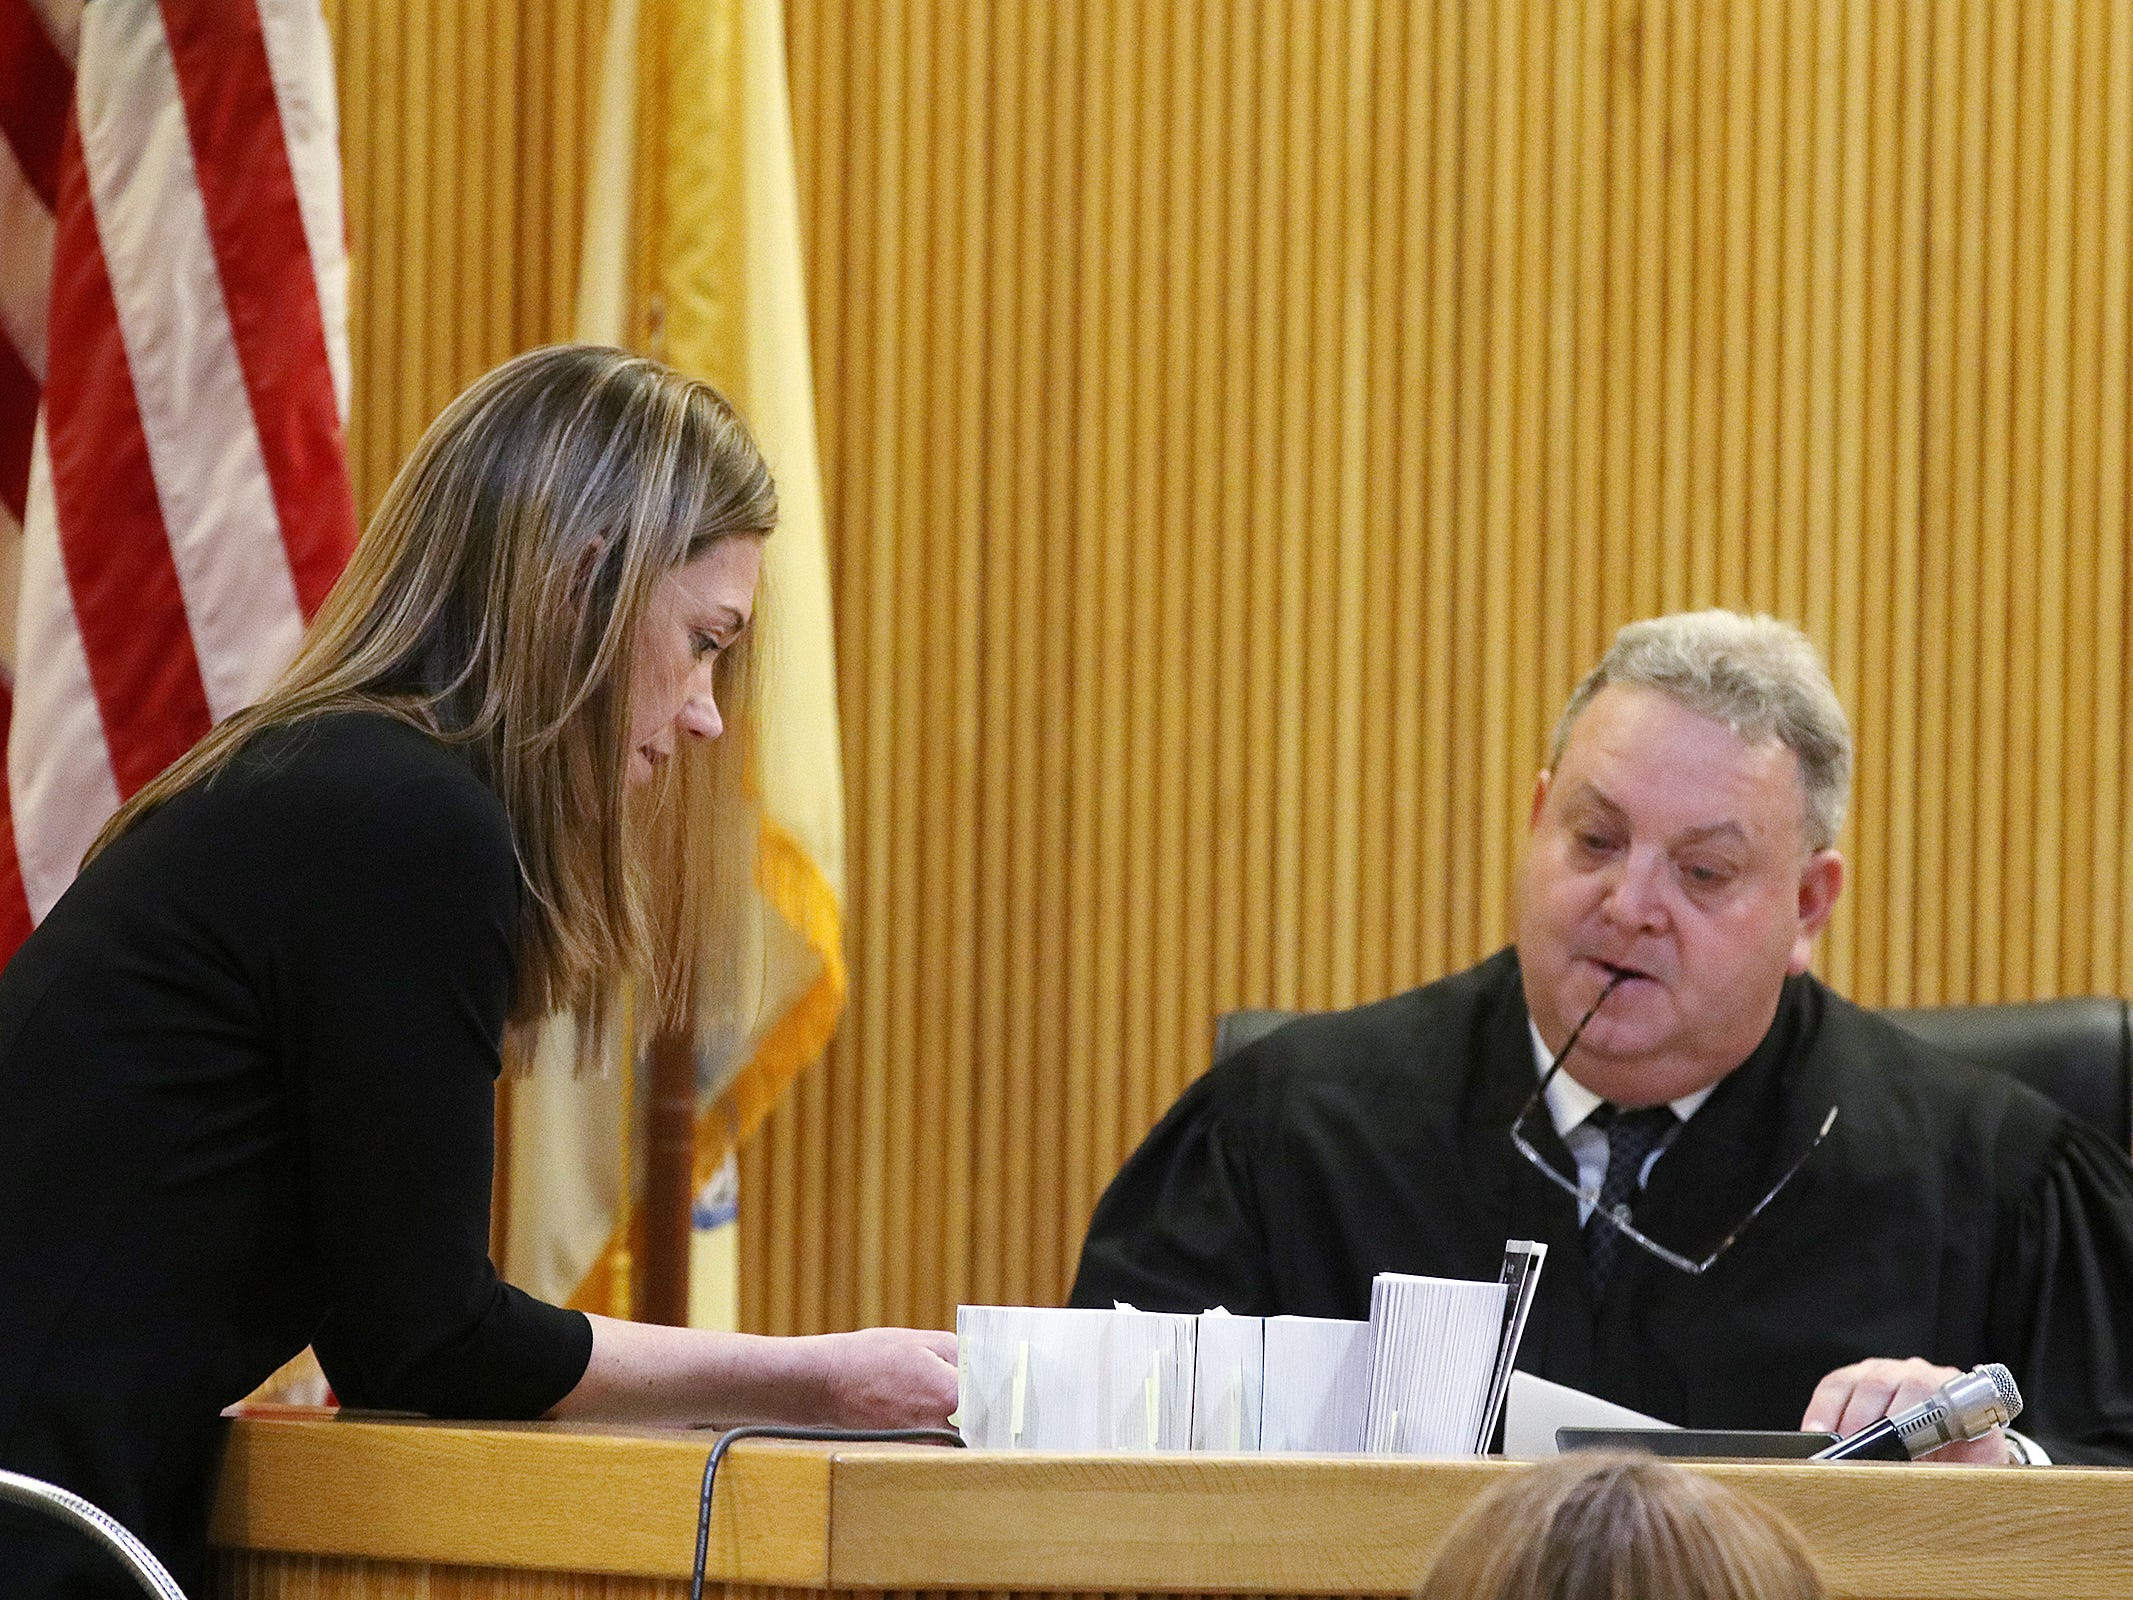 Meghan Doyle, assistant Monmouth County prosecutor, amends the language in the judge's charge to the jury before closing statements during the trial of Liam McAtasney, who is charged with the murder of former high school classmate, Sarah Stern, before Superior Court Judge Richard W. English at the Monmouth County Courthouse in Freehold, NJ Friday, February 22, 2019.